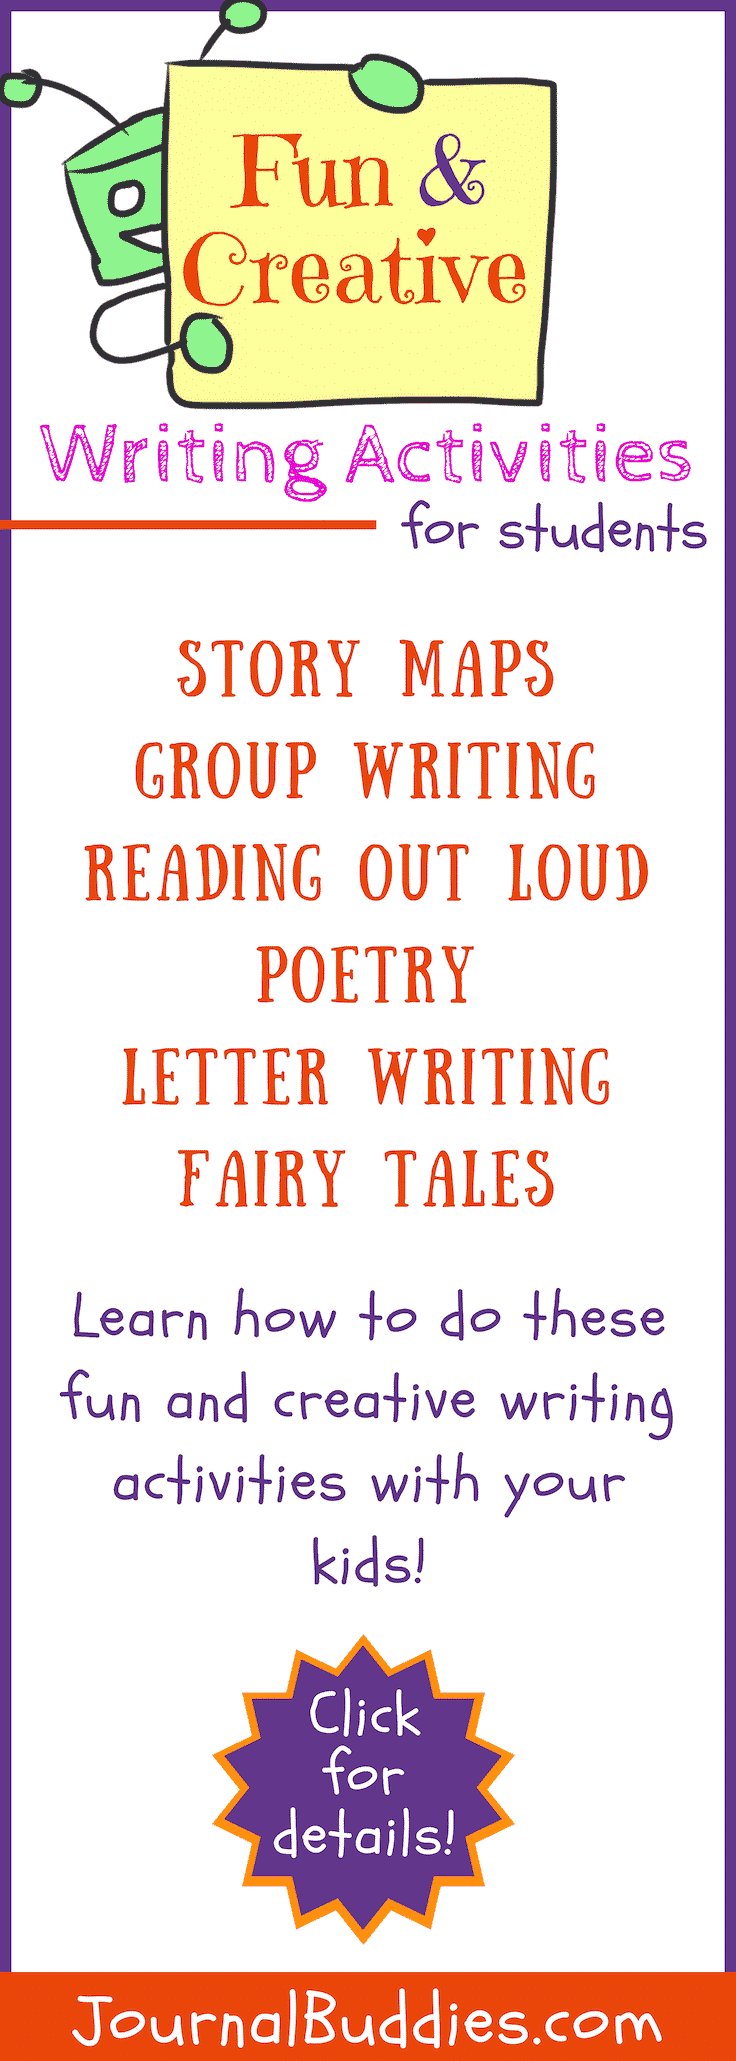 Creative writing activities are a wonderful way for students to get in tune with their own thoughts and learn to communicate more effectively!